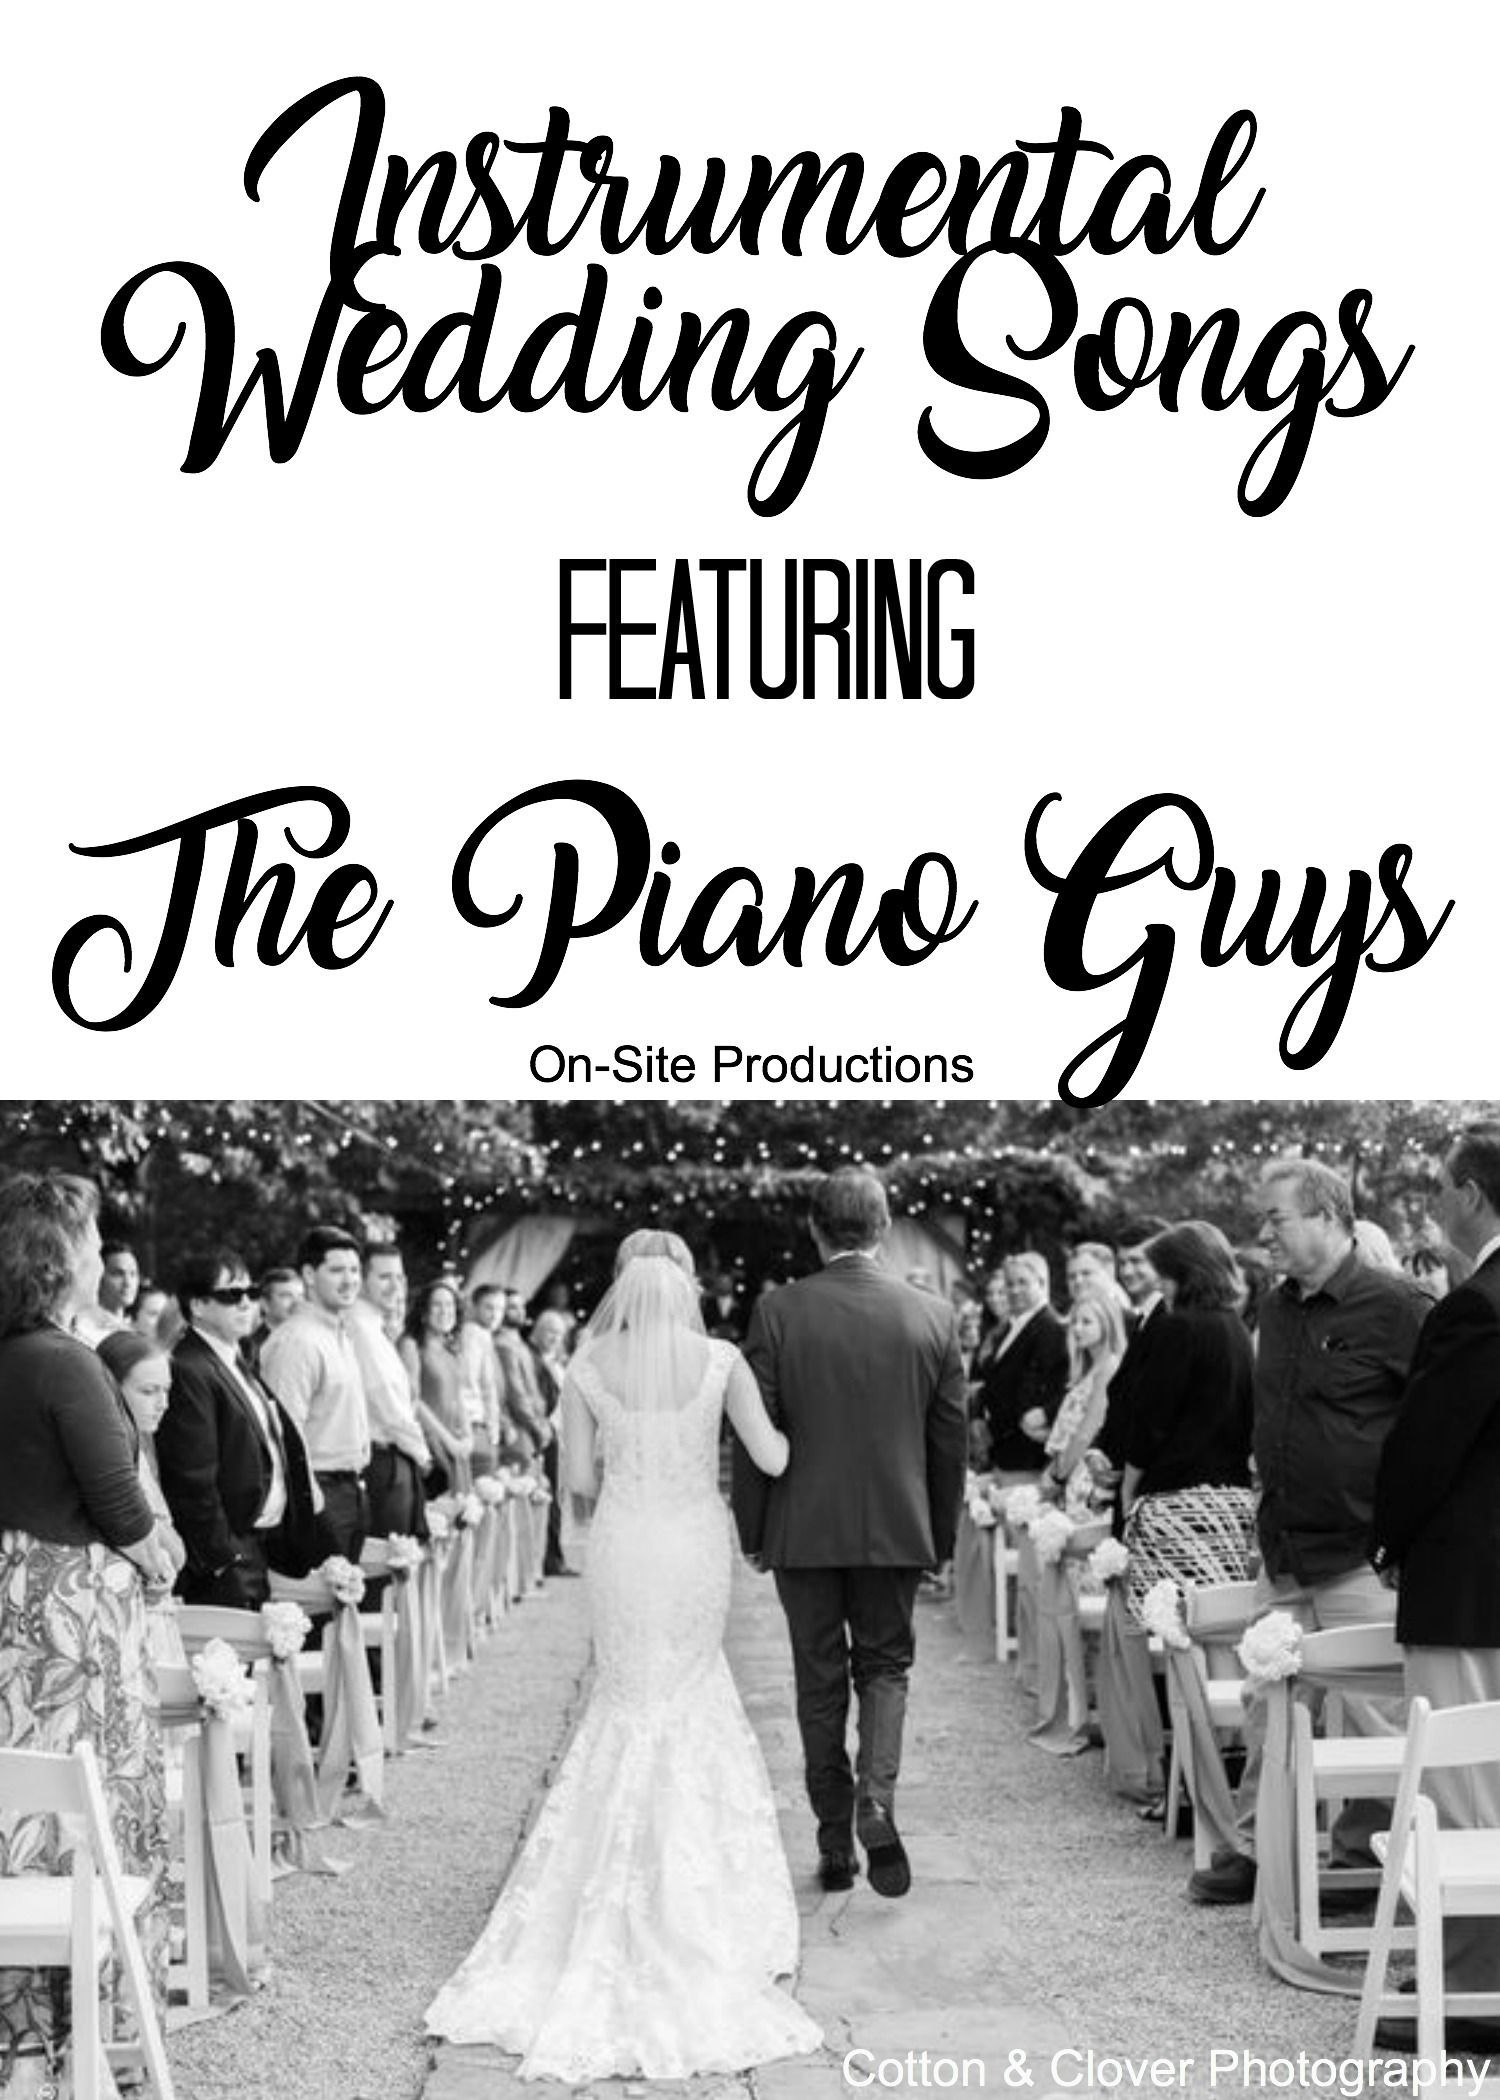 What Song Will You Walk Down The Aisle To I M Guessing It Will Be Instrumental Right Music Ca Christian Wedding Songs Wedding Songs Instrumental Wedding Songs